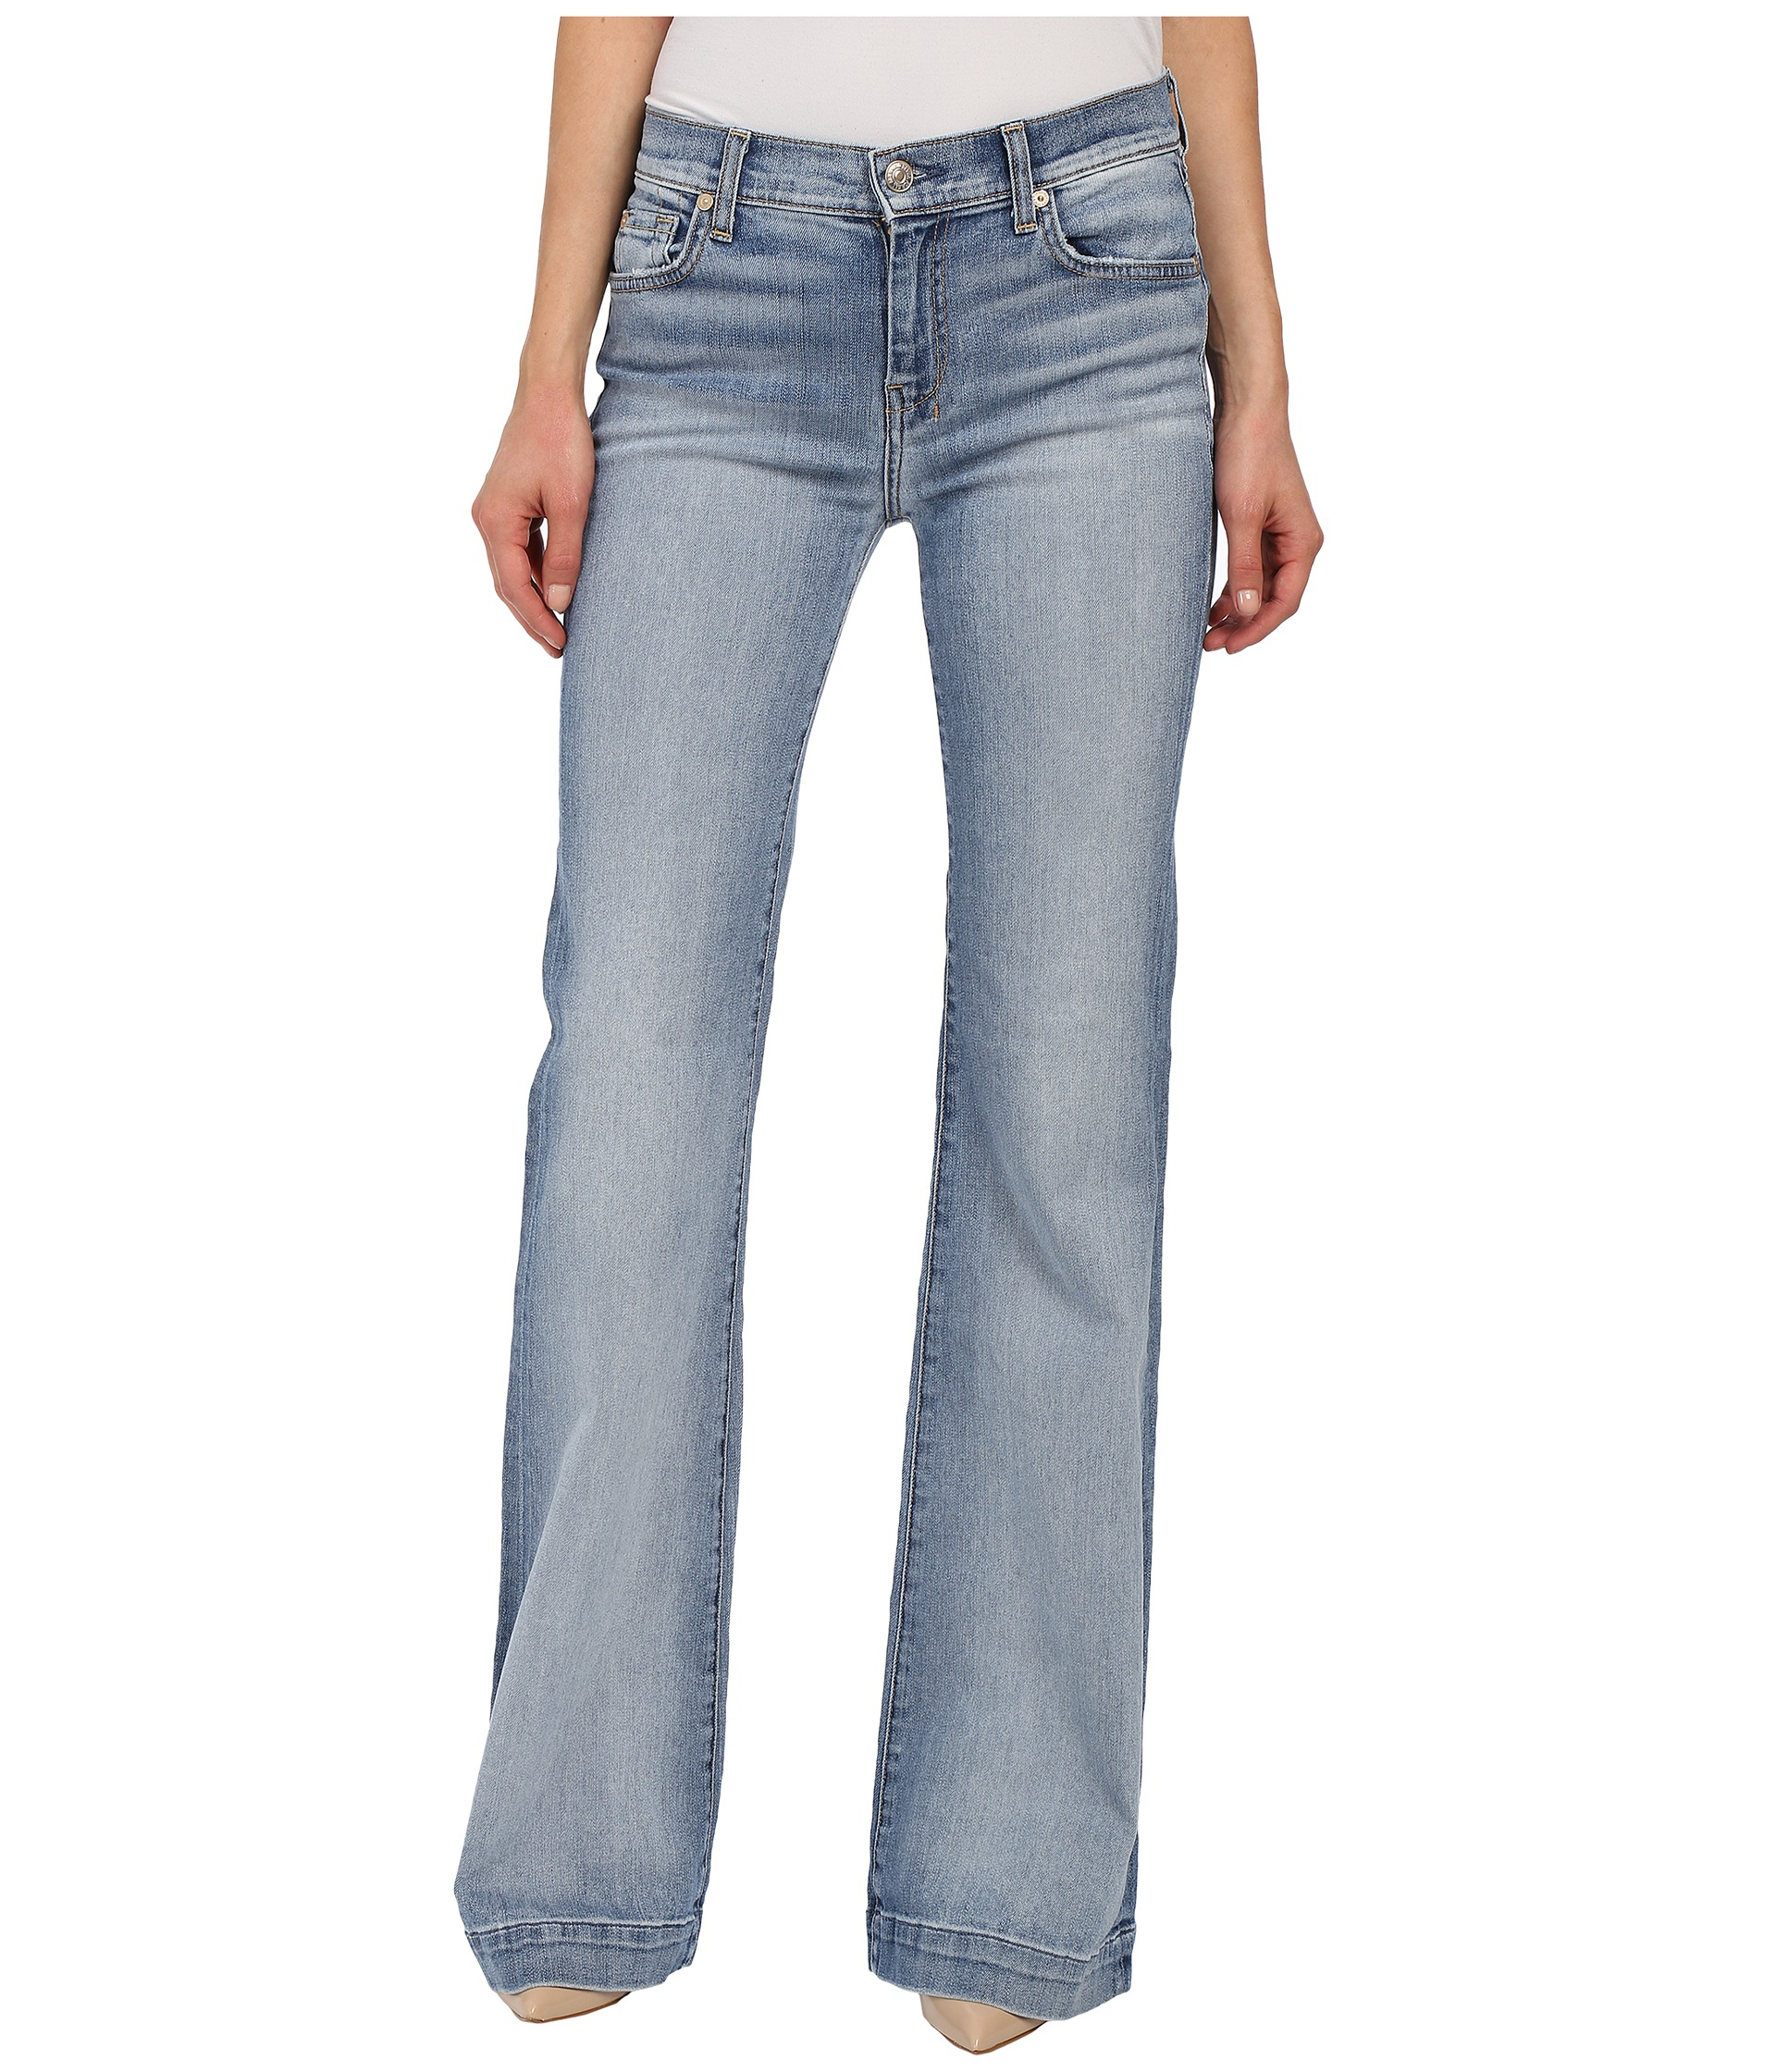 7 for all mankind Dojo In Pretty Light Vintage in Blue | Lyst